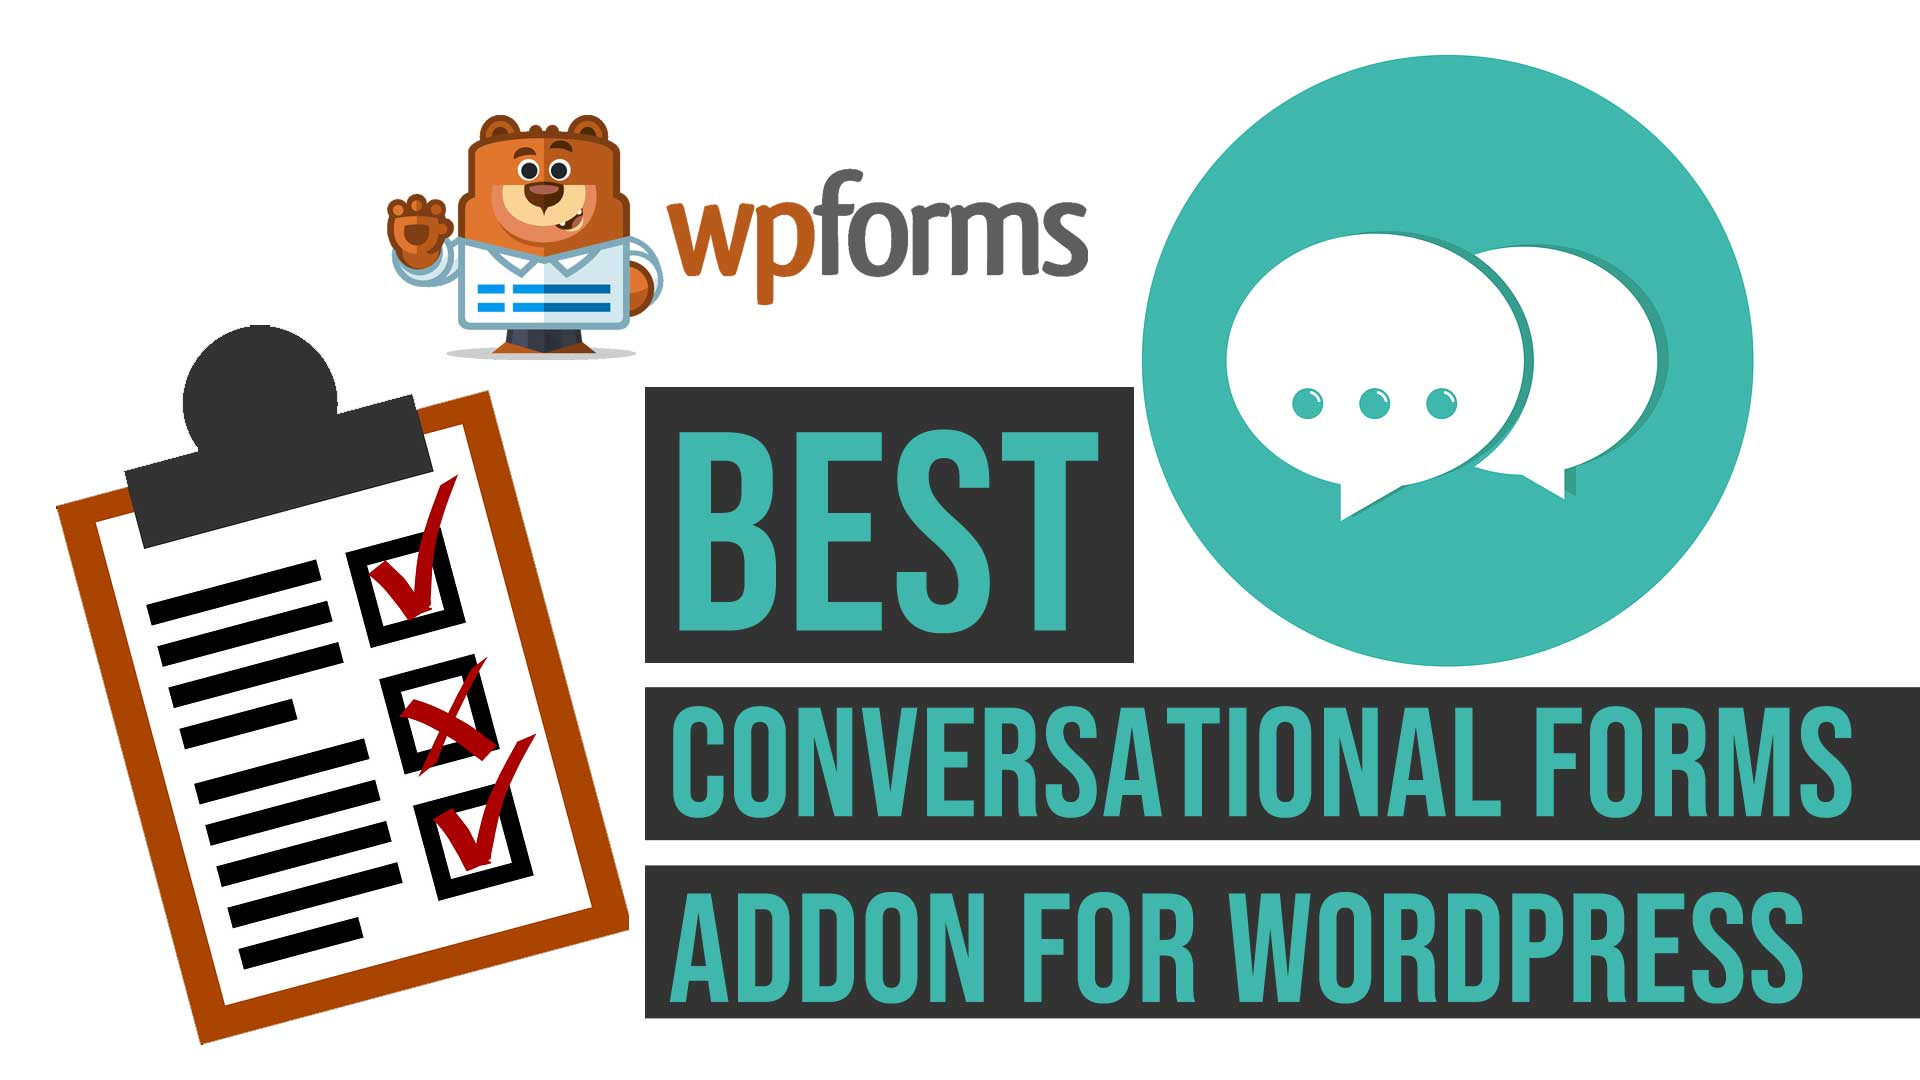 Best conversational forms for WordPress sites